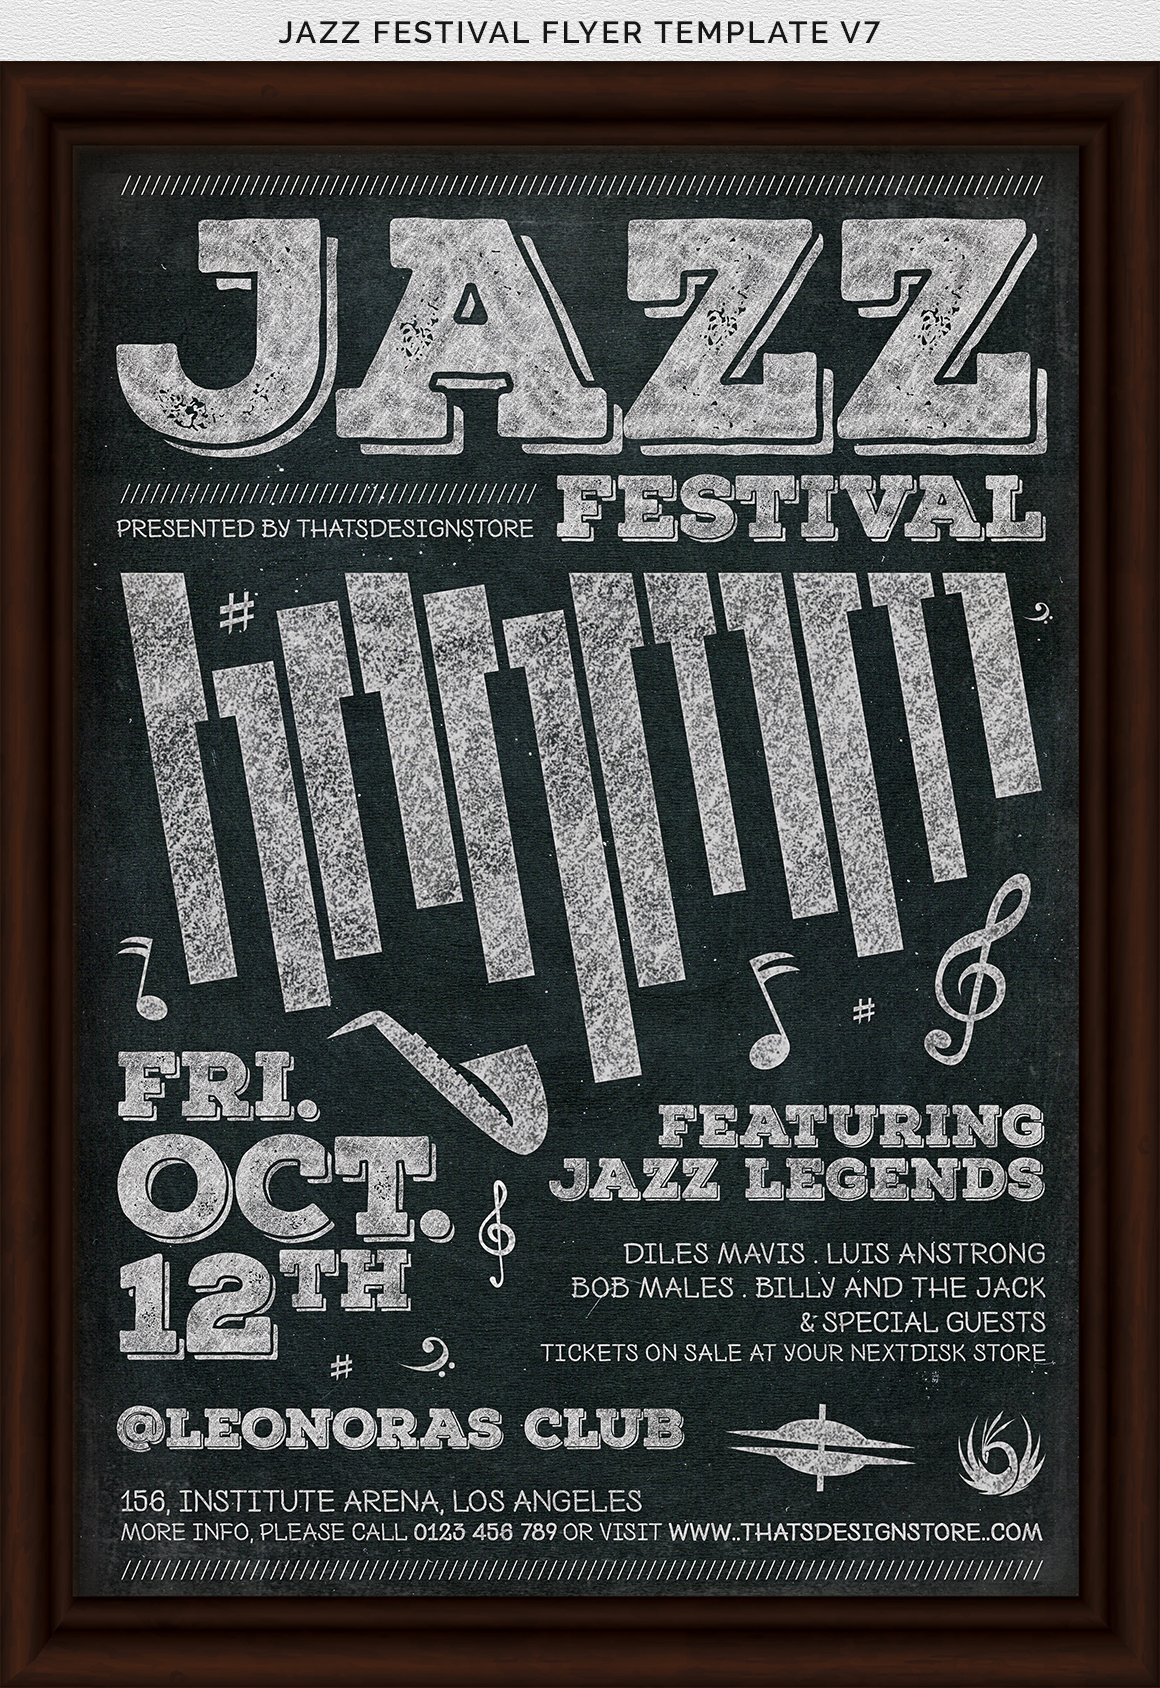 Jazz Festival Flyer Template V7 example image 7